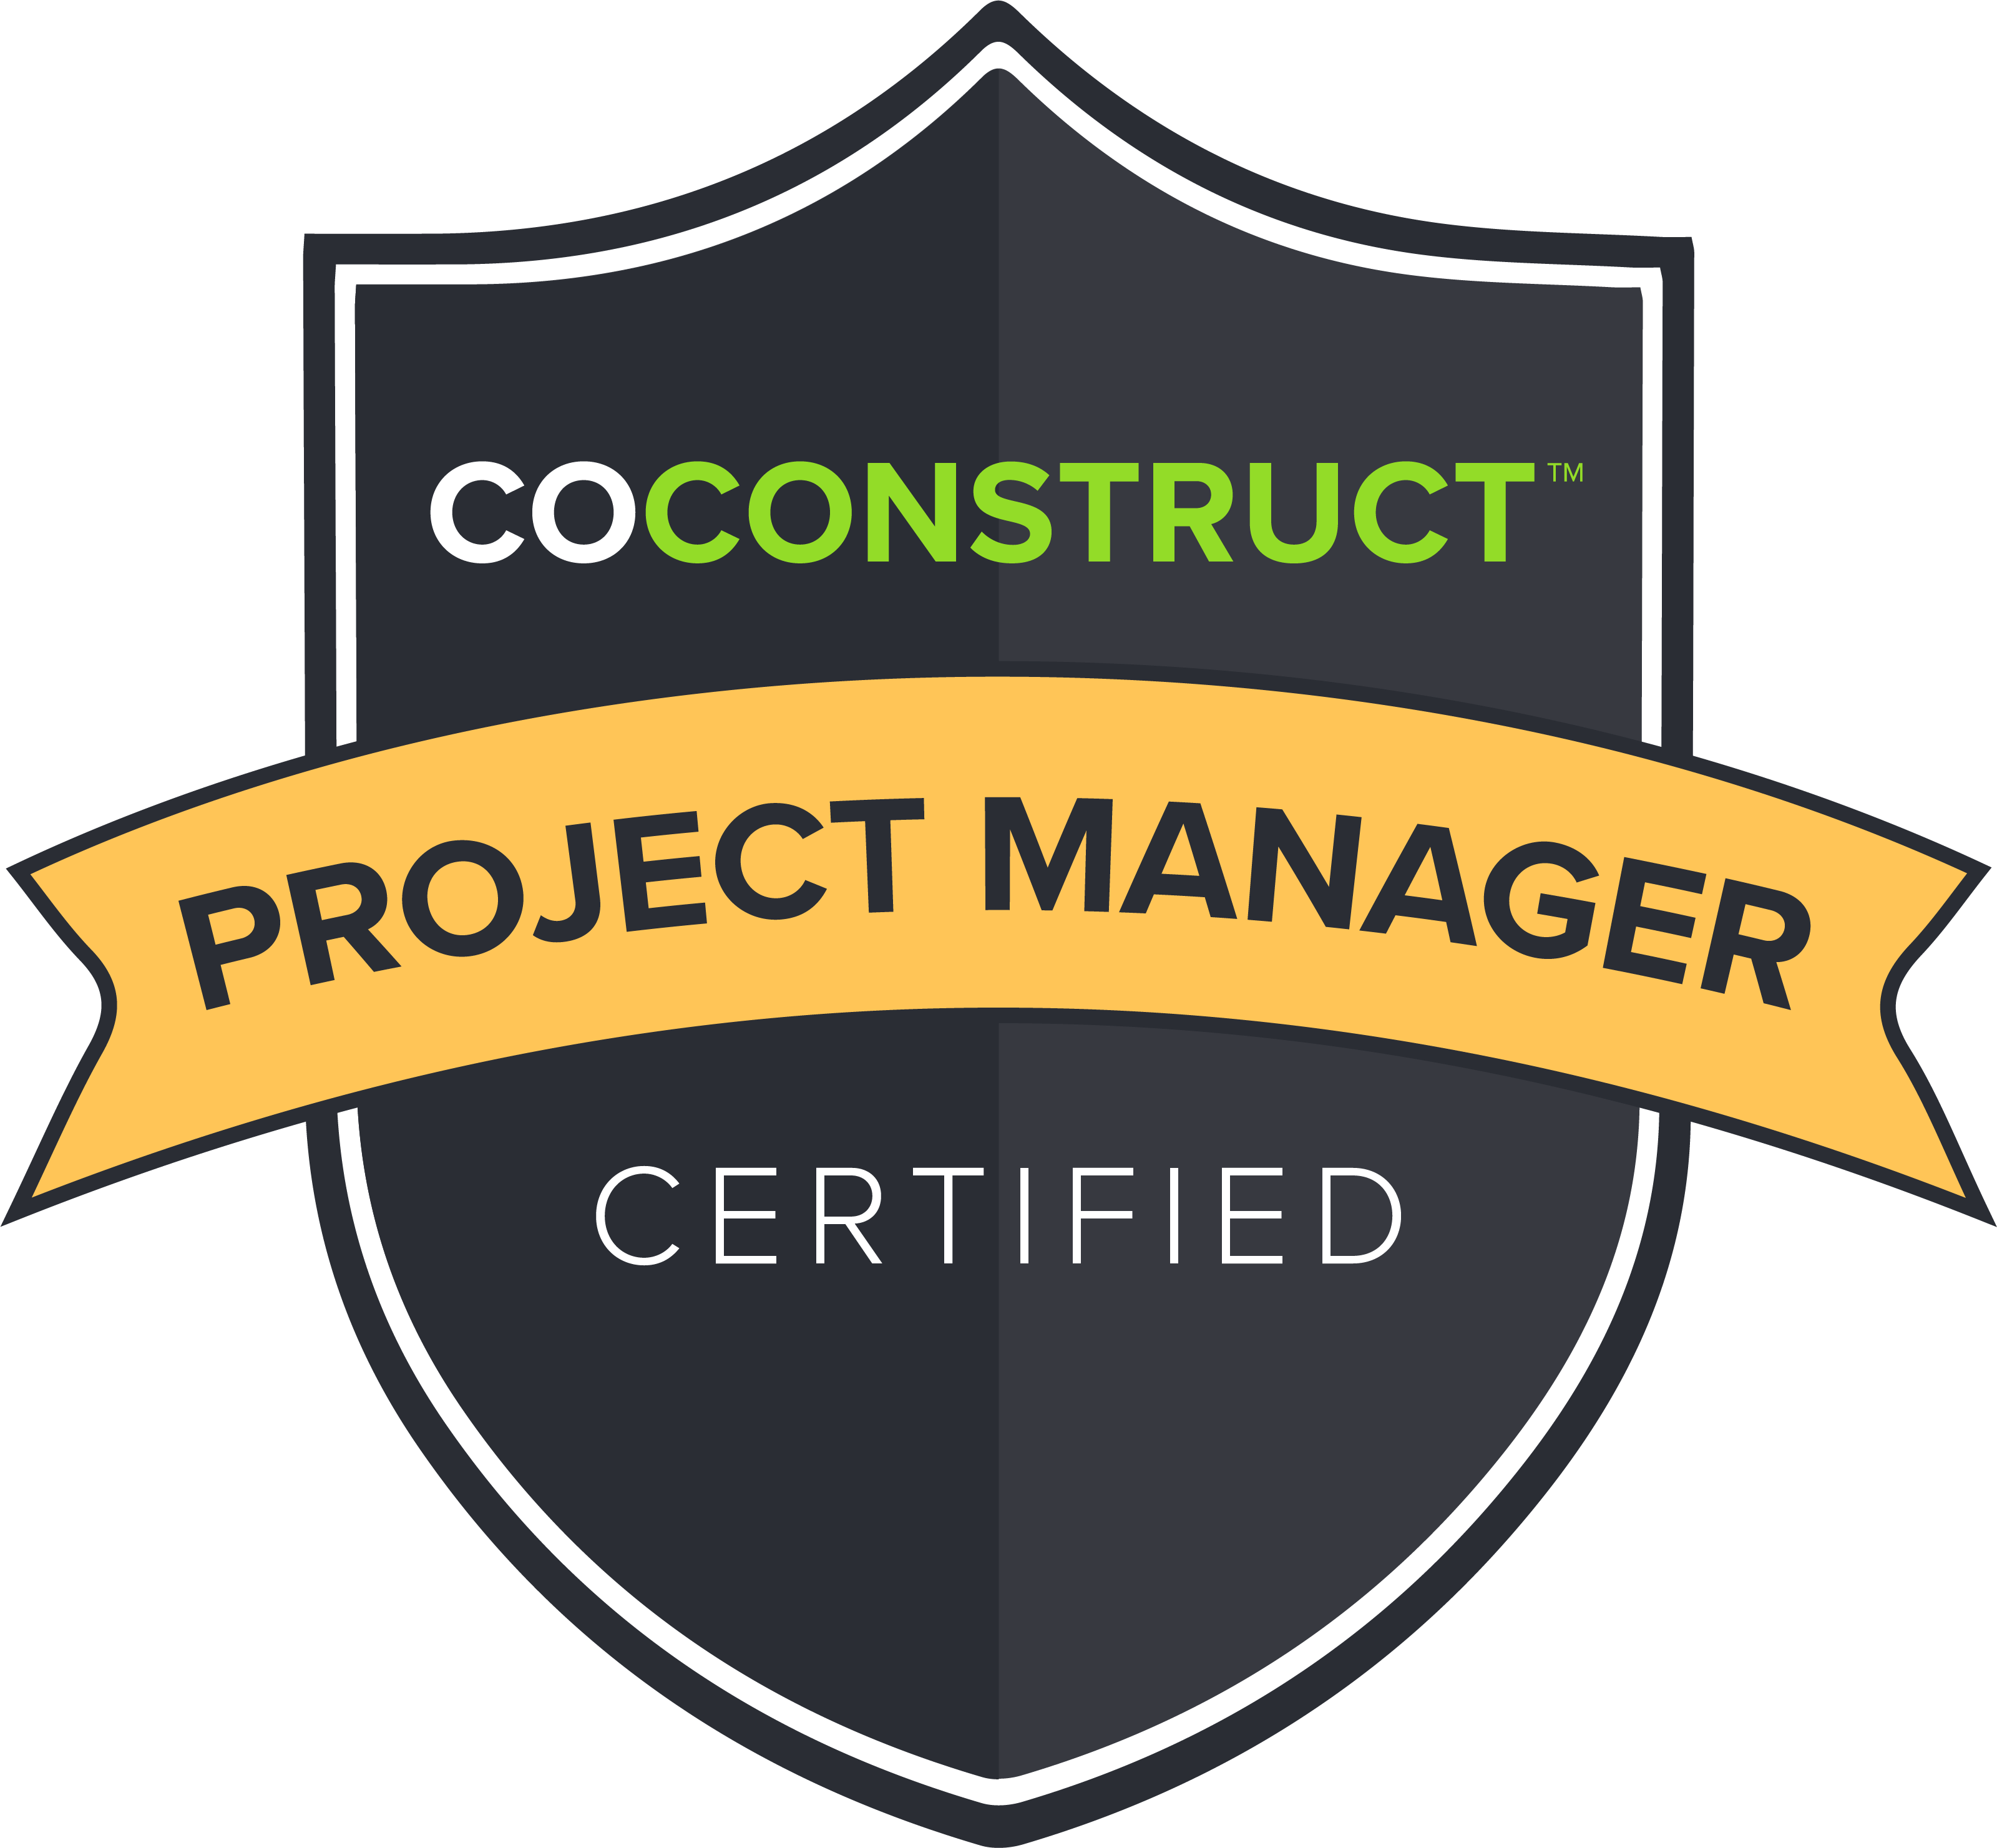 CoConstruct Project Manager Badge